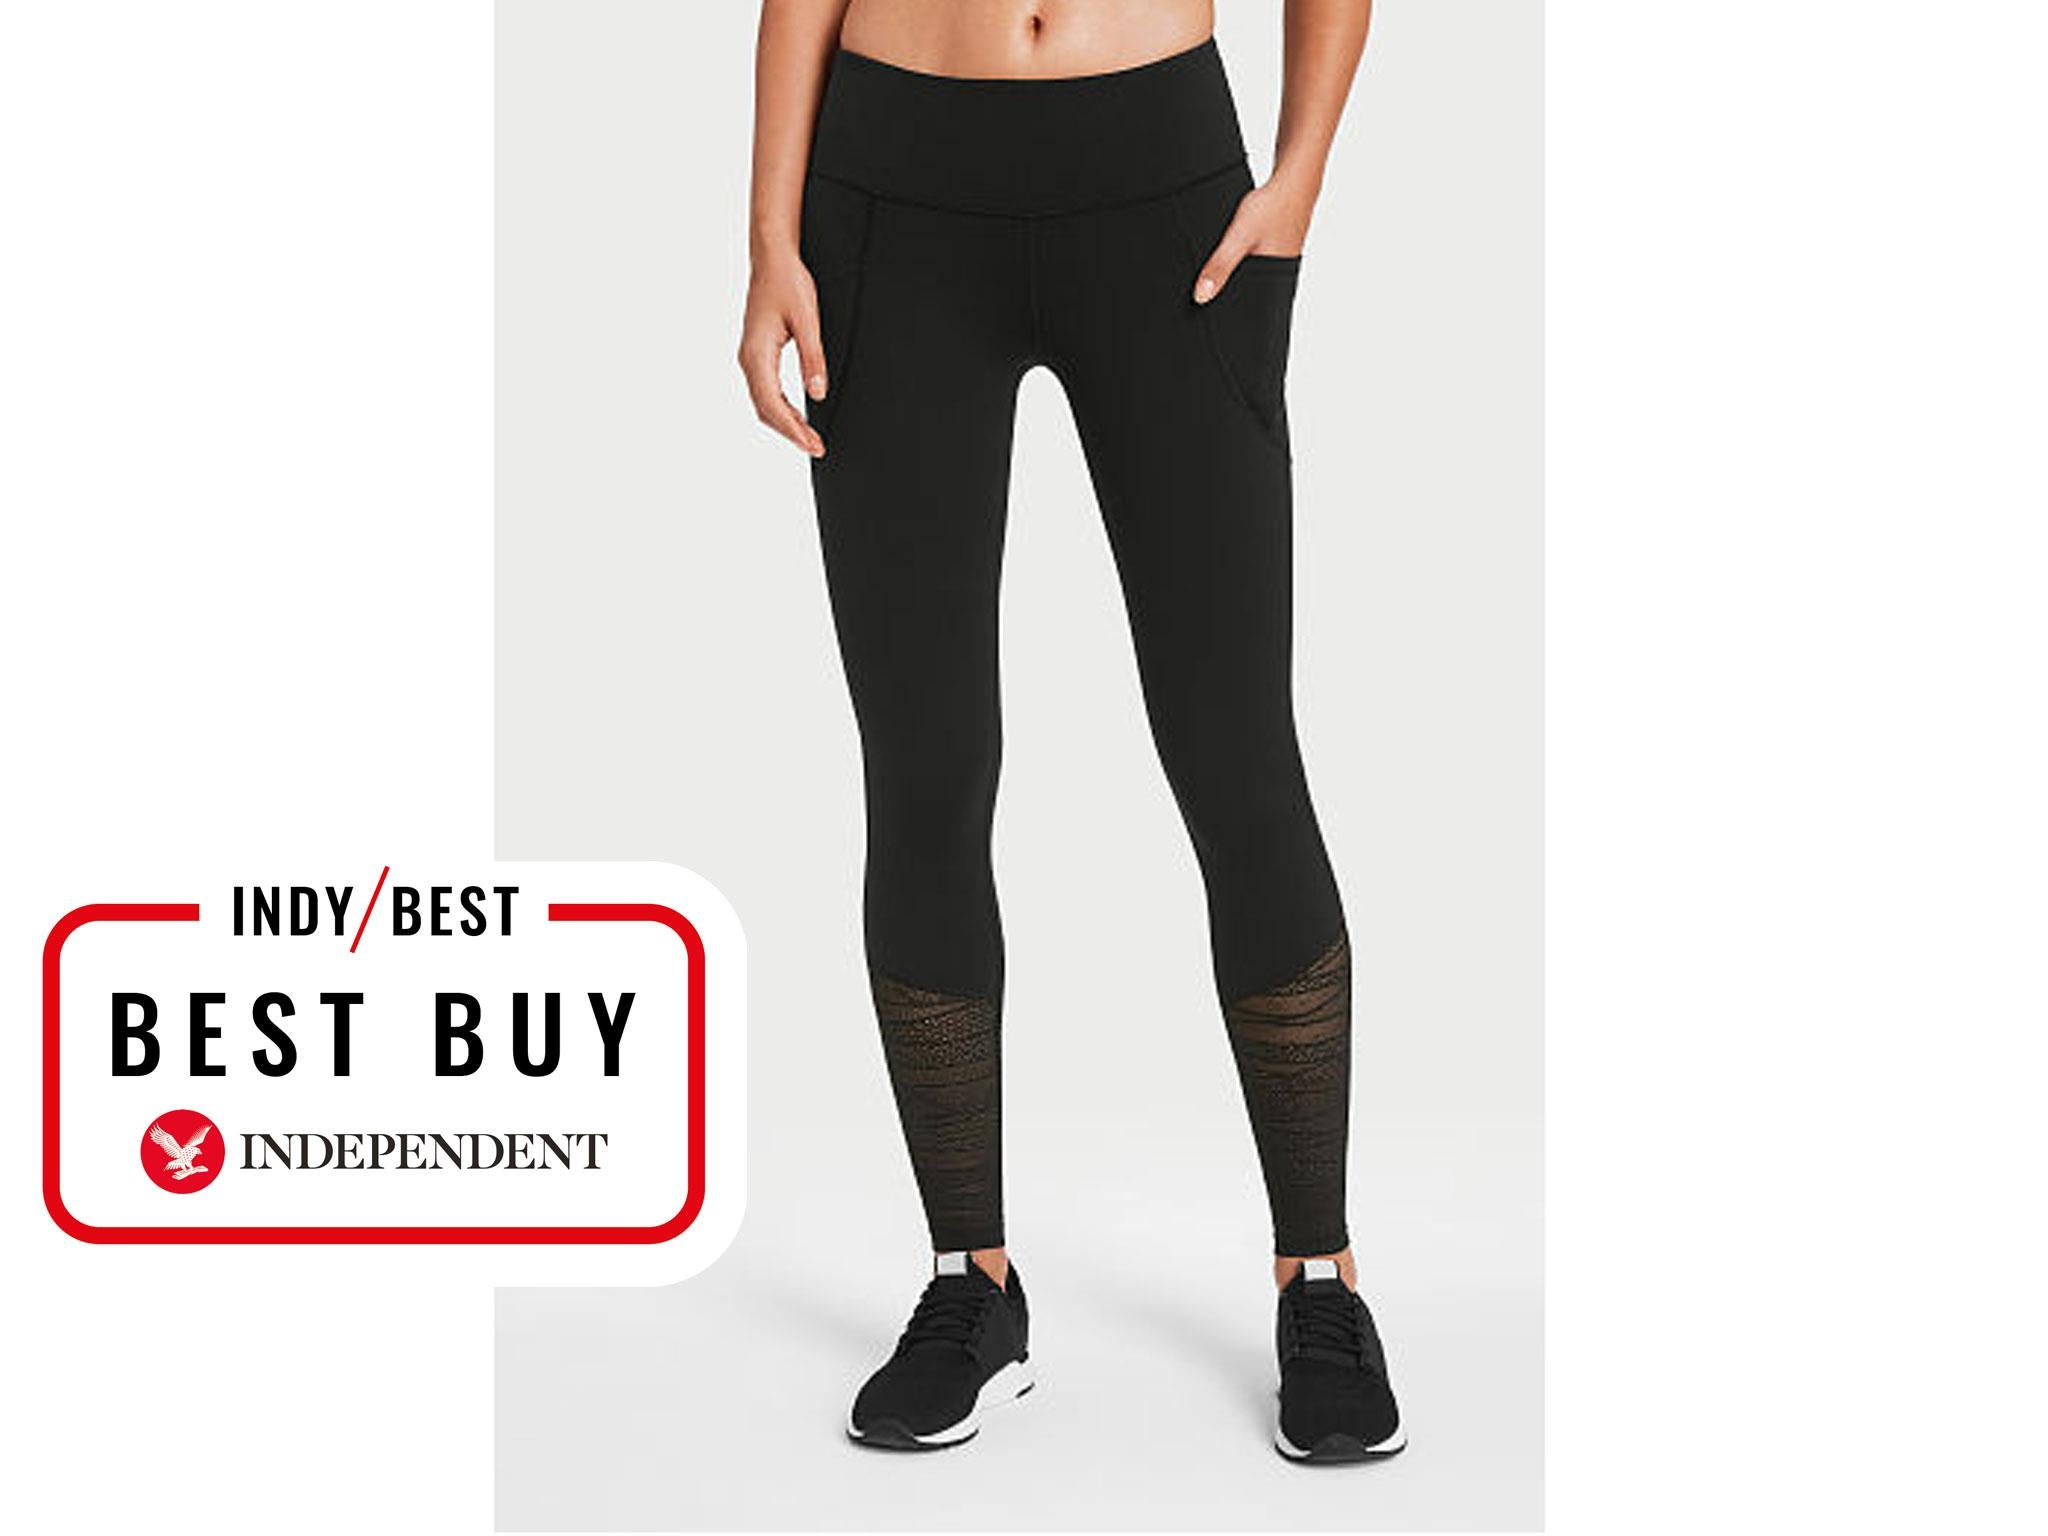 8e04397d2a7df7 Victoria's Secret Knockout Leggings: £68.43, Victoria's Secret. These gym  leggings ...